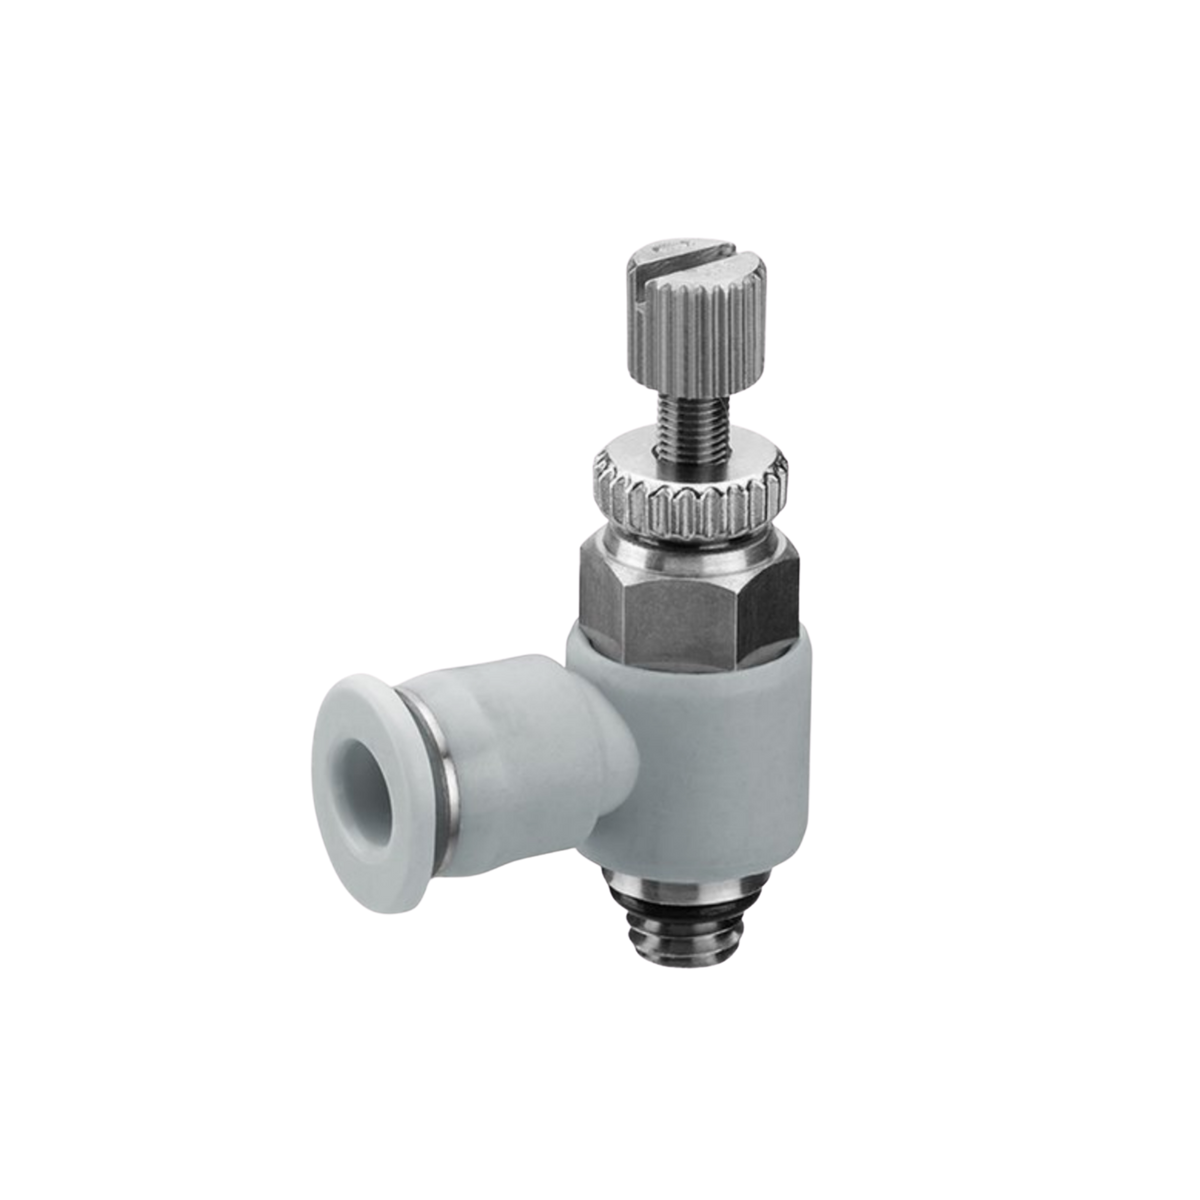 90 degree check valve fitting with adjustable knob on top, male thread on the bottom and female push in on the side